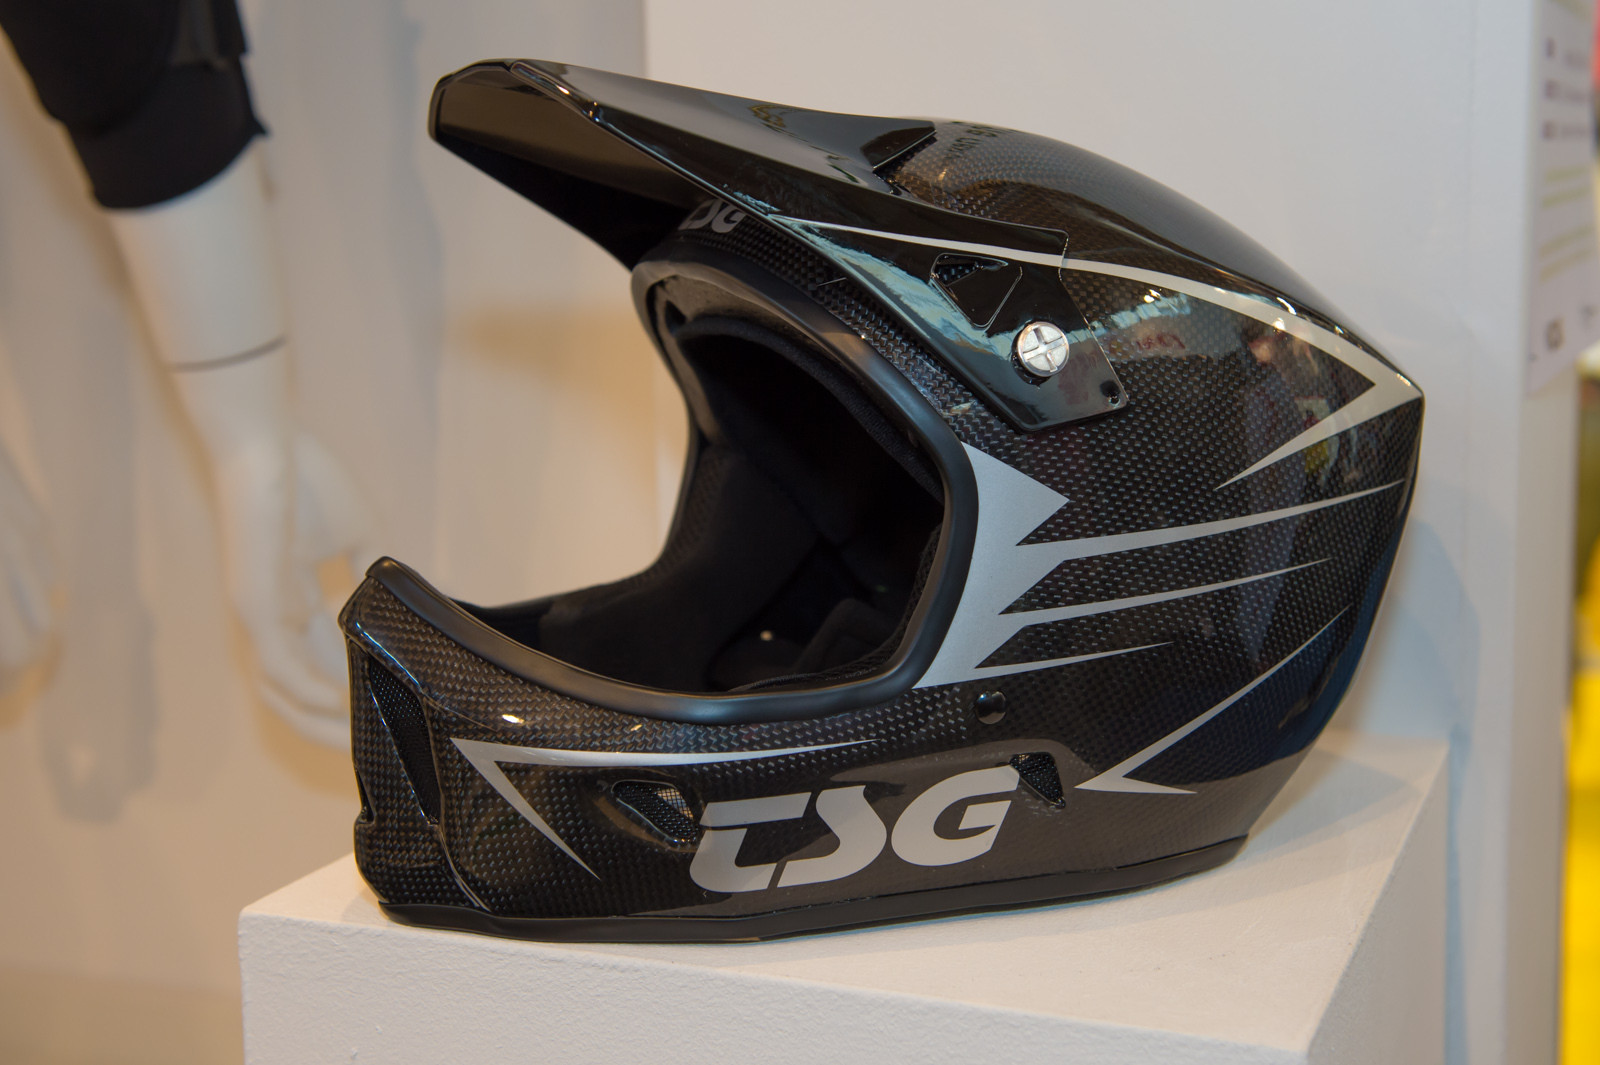 TSG Advance Carbon Full-Face Helmet - 2014 Mountain Bike Apparel & Protection at Eurobike 2013 - Mountain Biking Pictures - Vital MTB